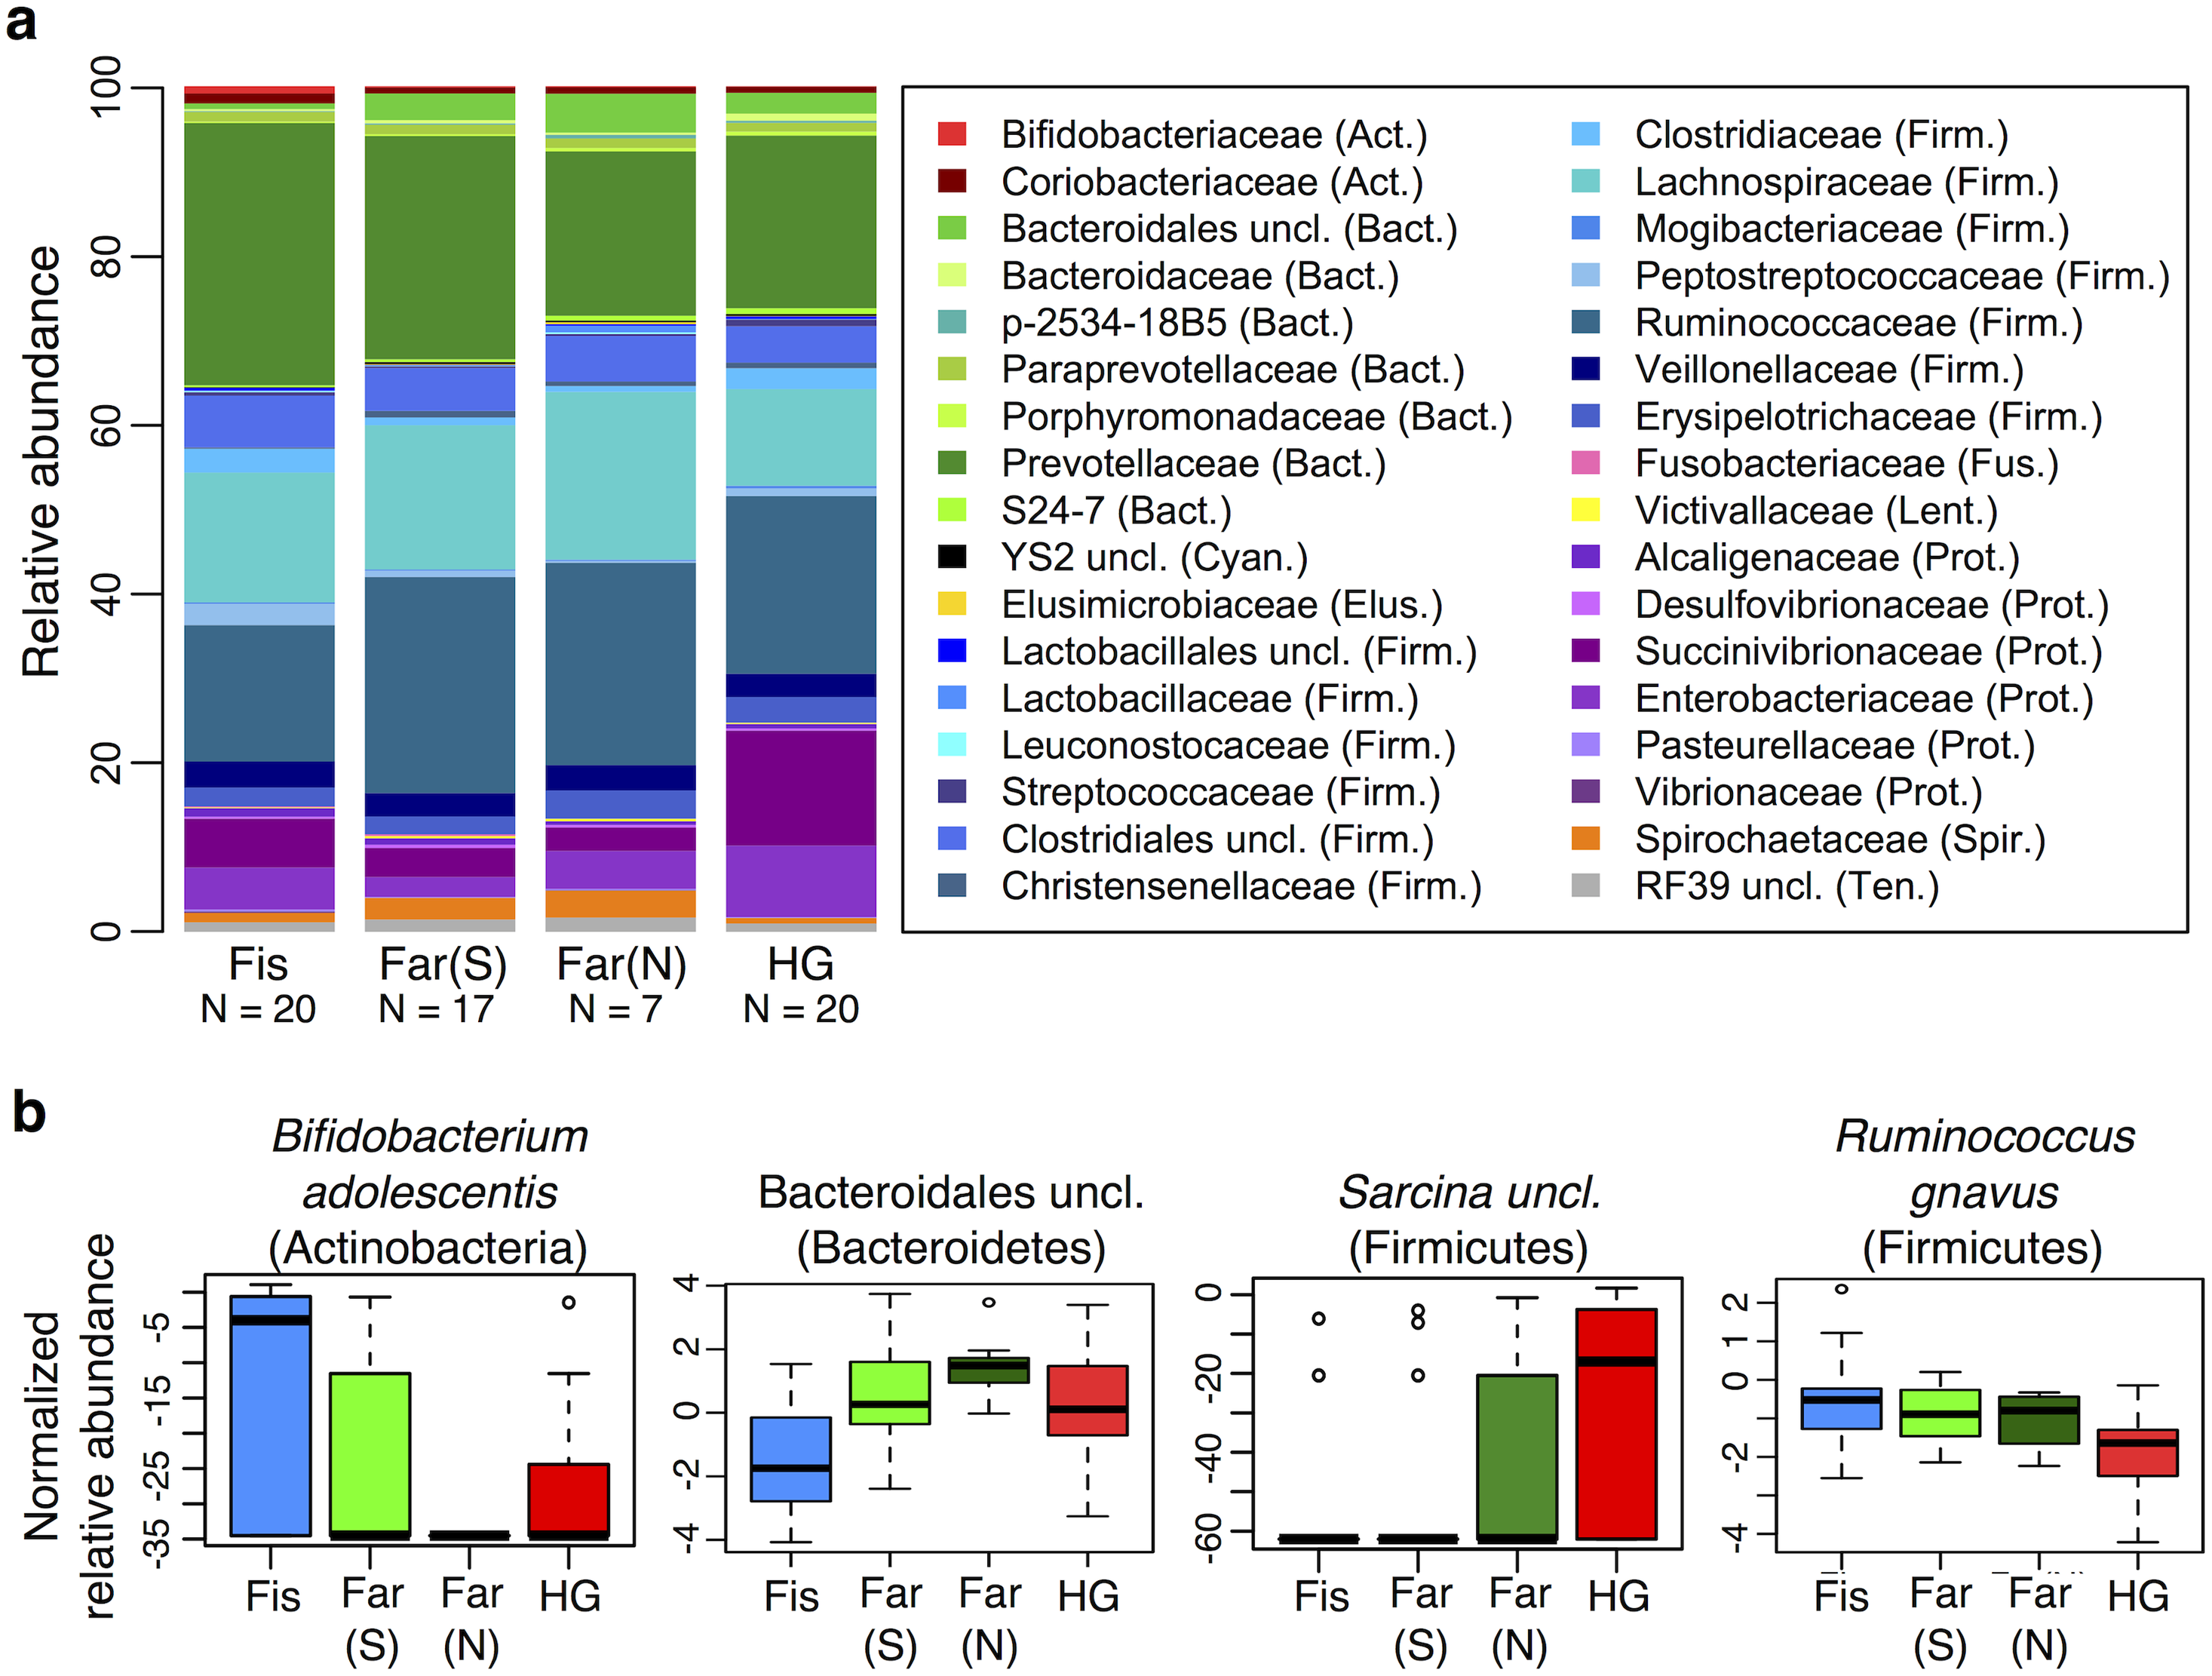 Relationship between subsistence modes and fecal microbiome composition.